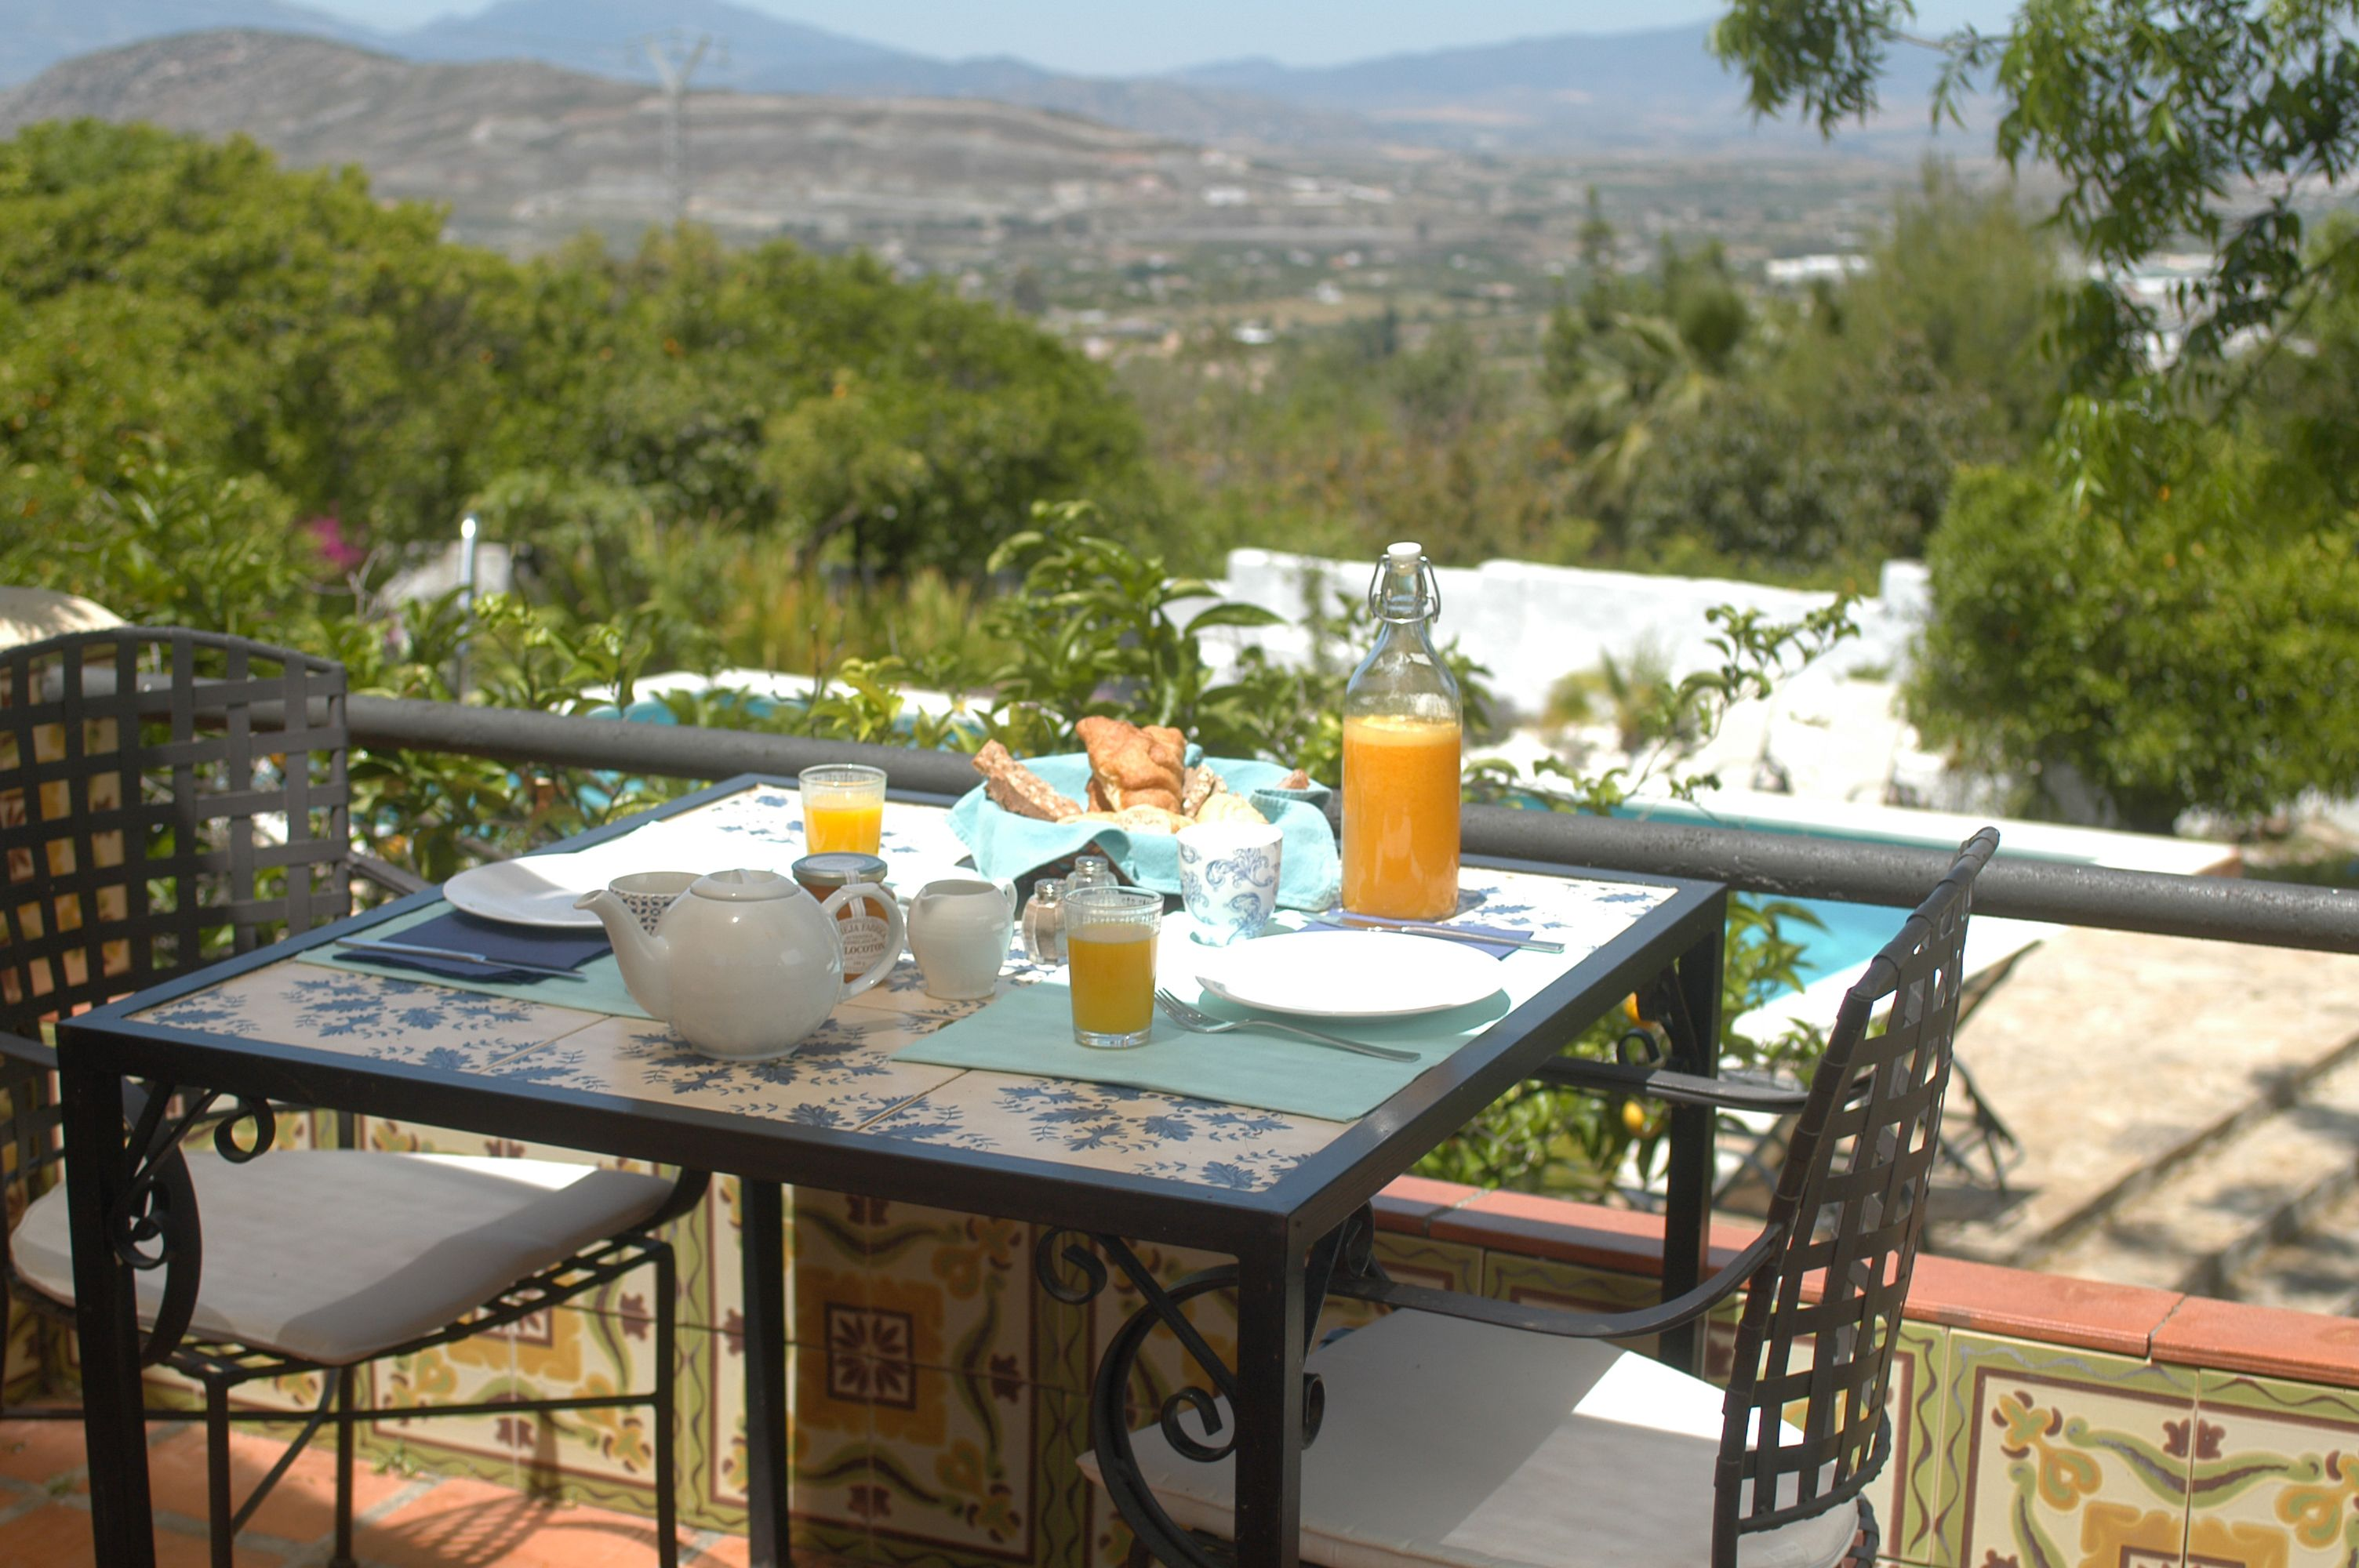 Breakfast @Anita Casalis de Orange